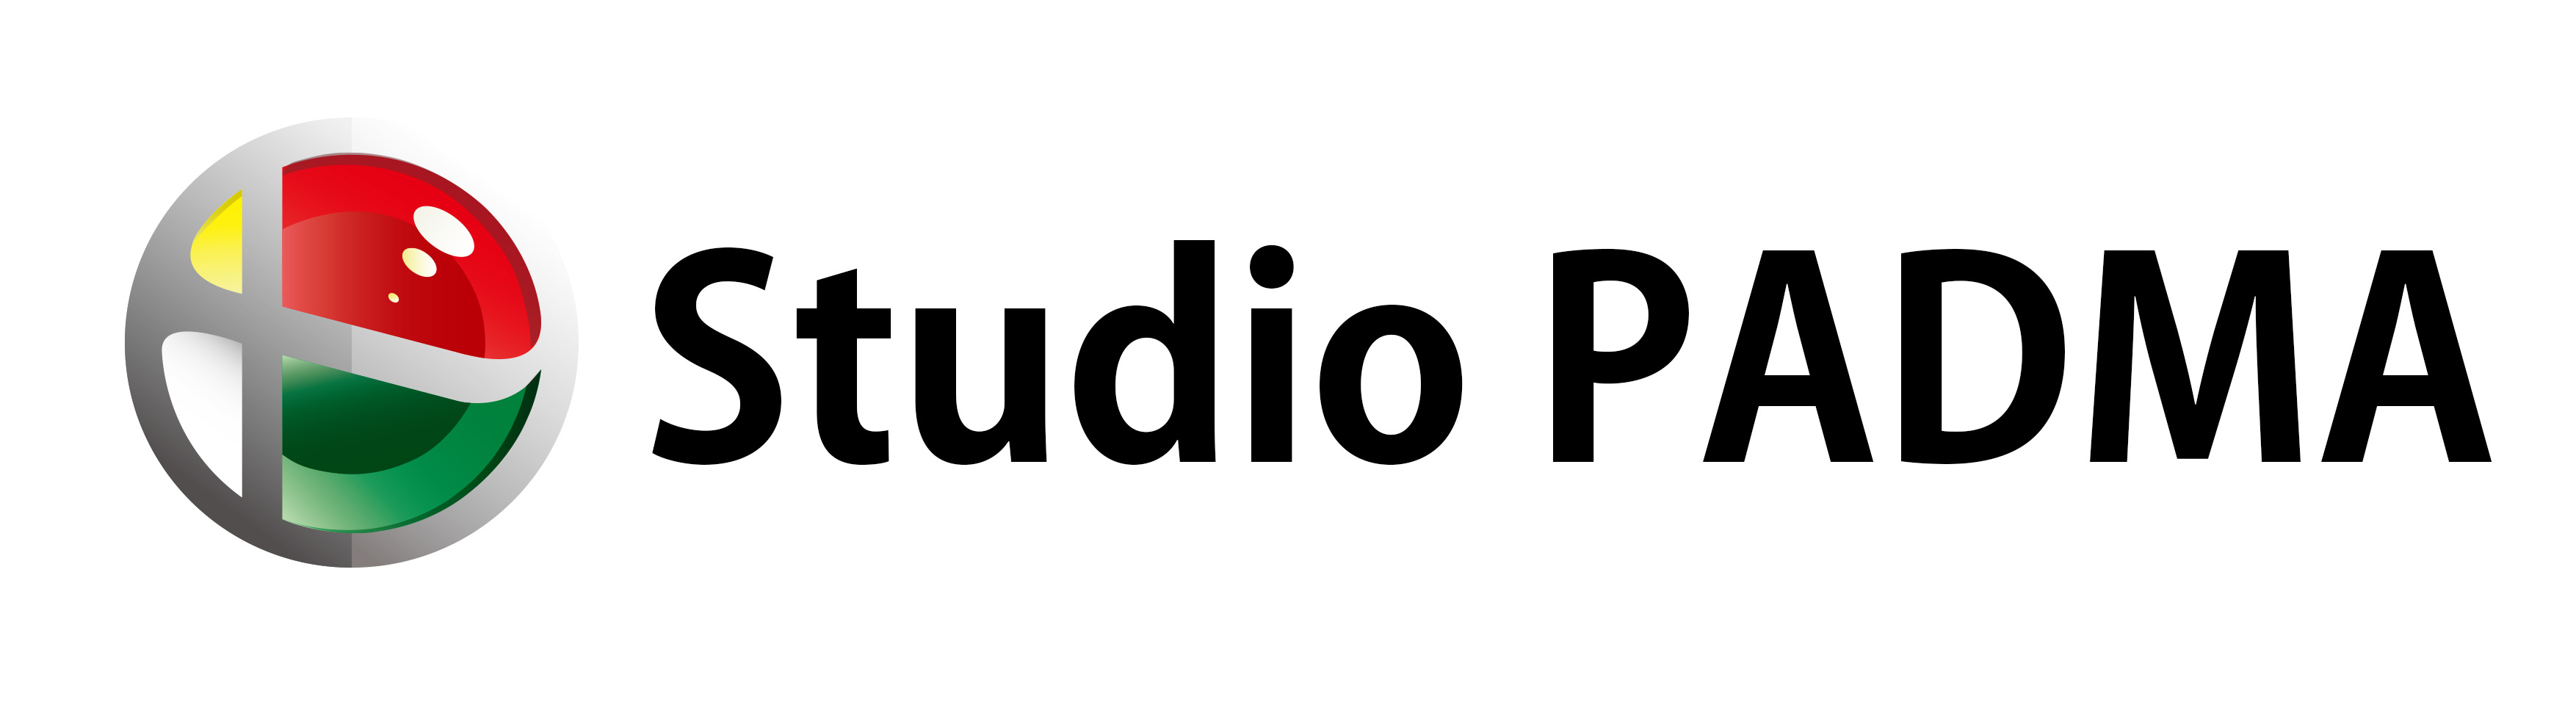 Studio PADMA -Animation & Media Production-